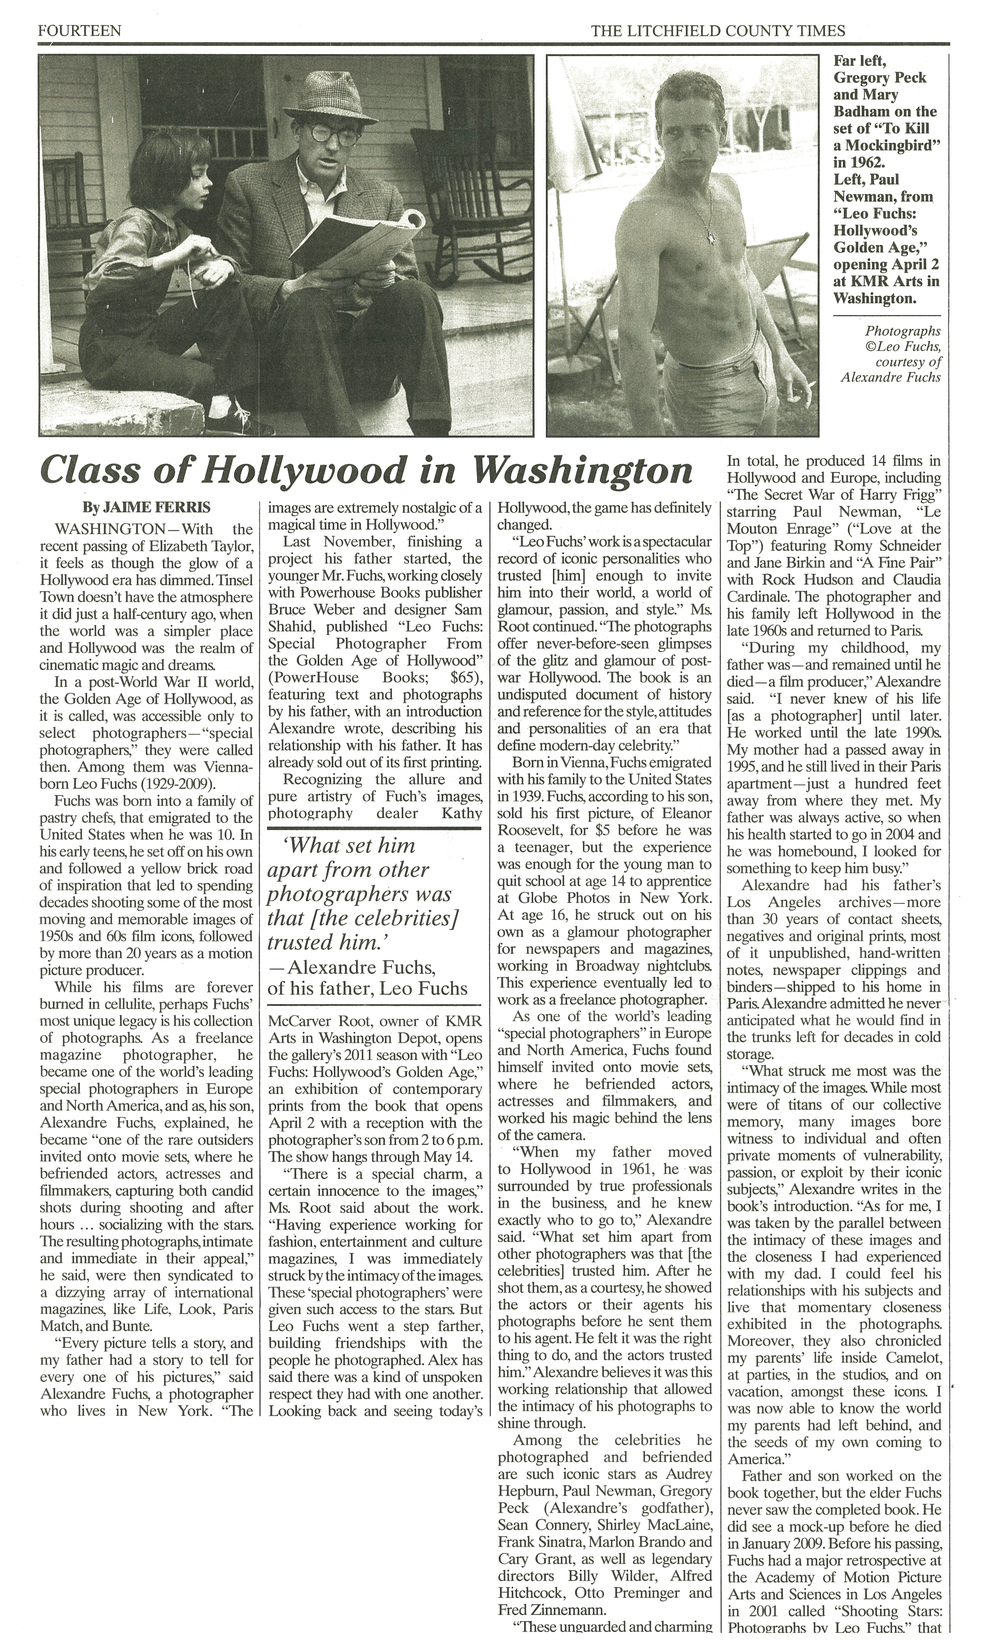 Class Of Hollywood in Washington. April 1, 2011 Litchfield County Times.jpg